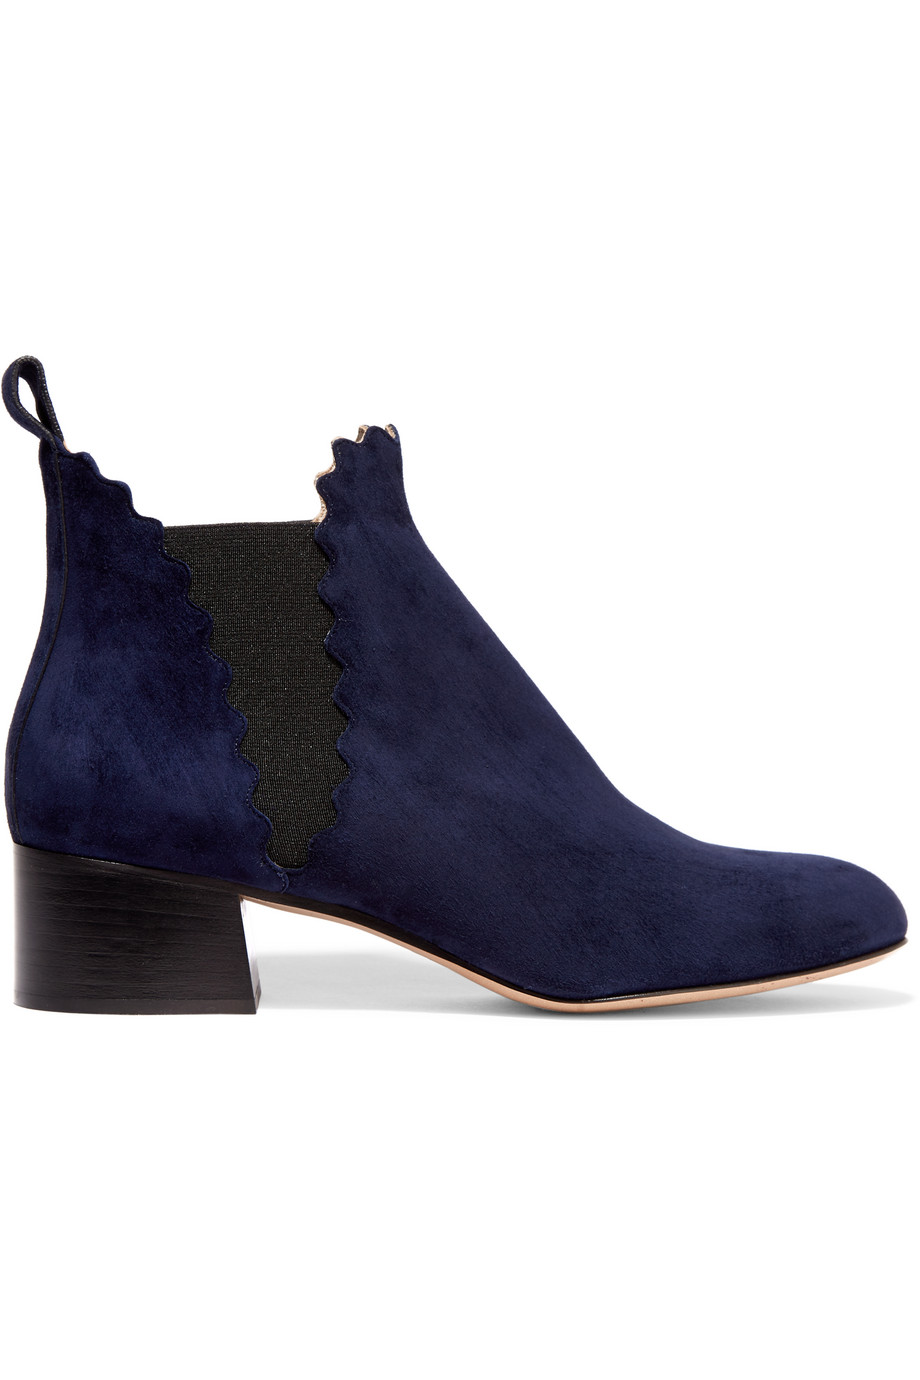 Chloé Suede Scalloped Ankle Boots, Midnight Blue, Women's US Size: 5.5, Size: 36